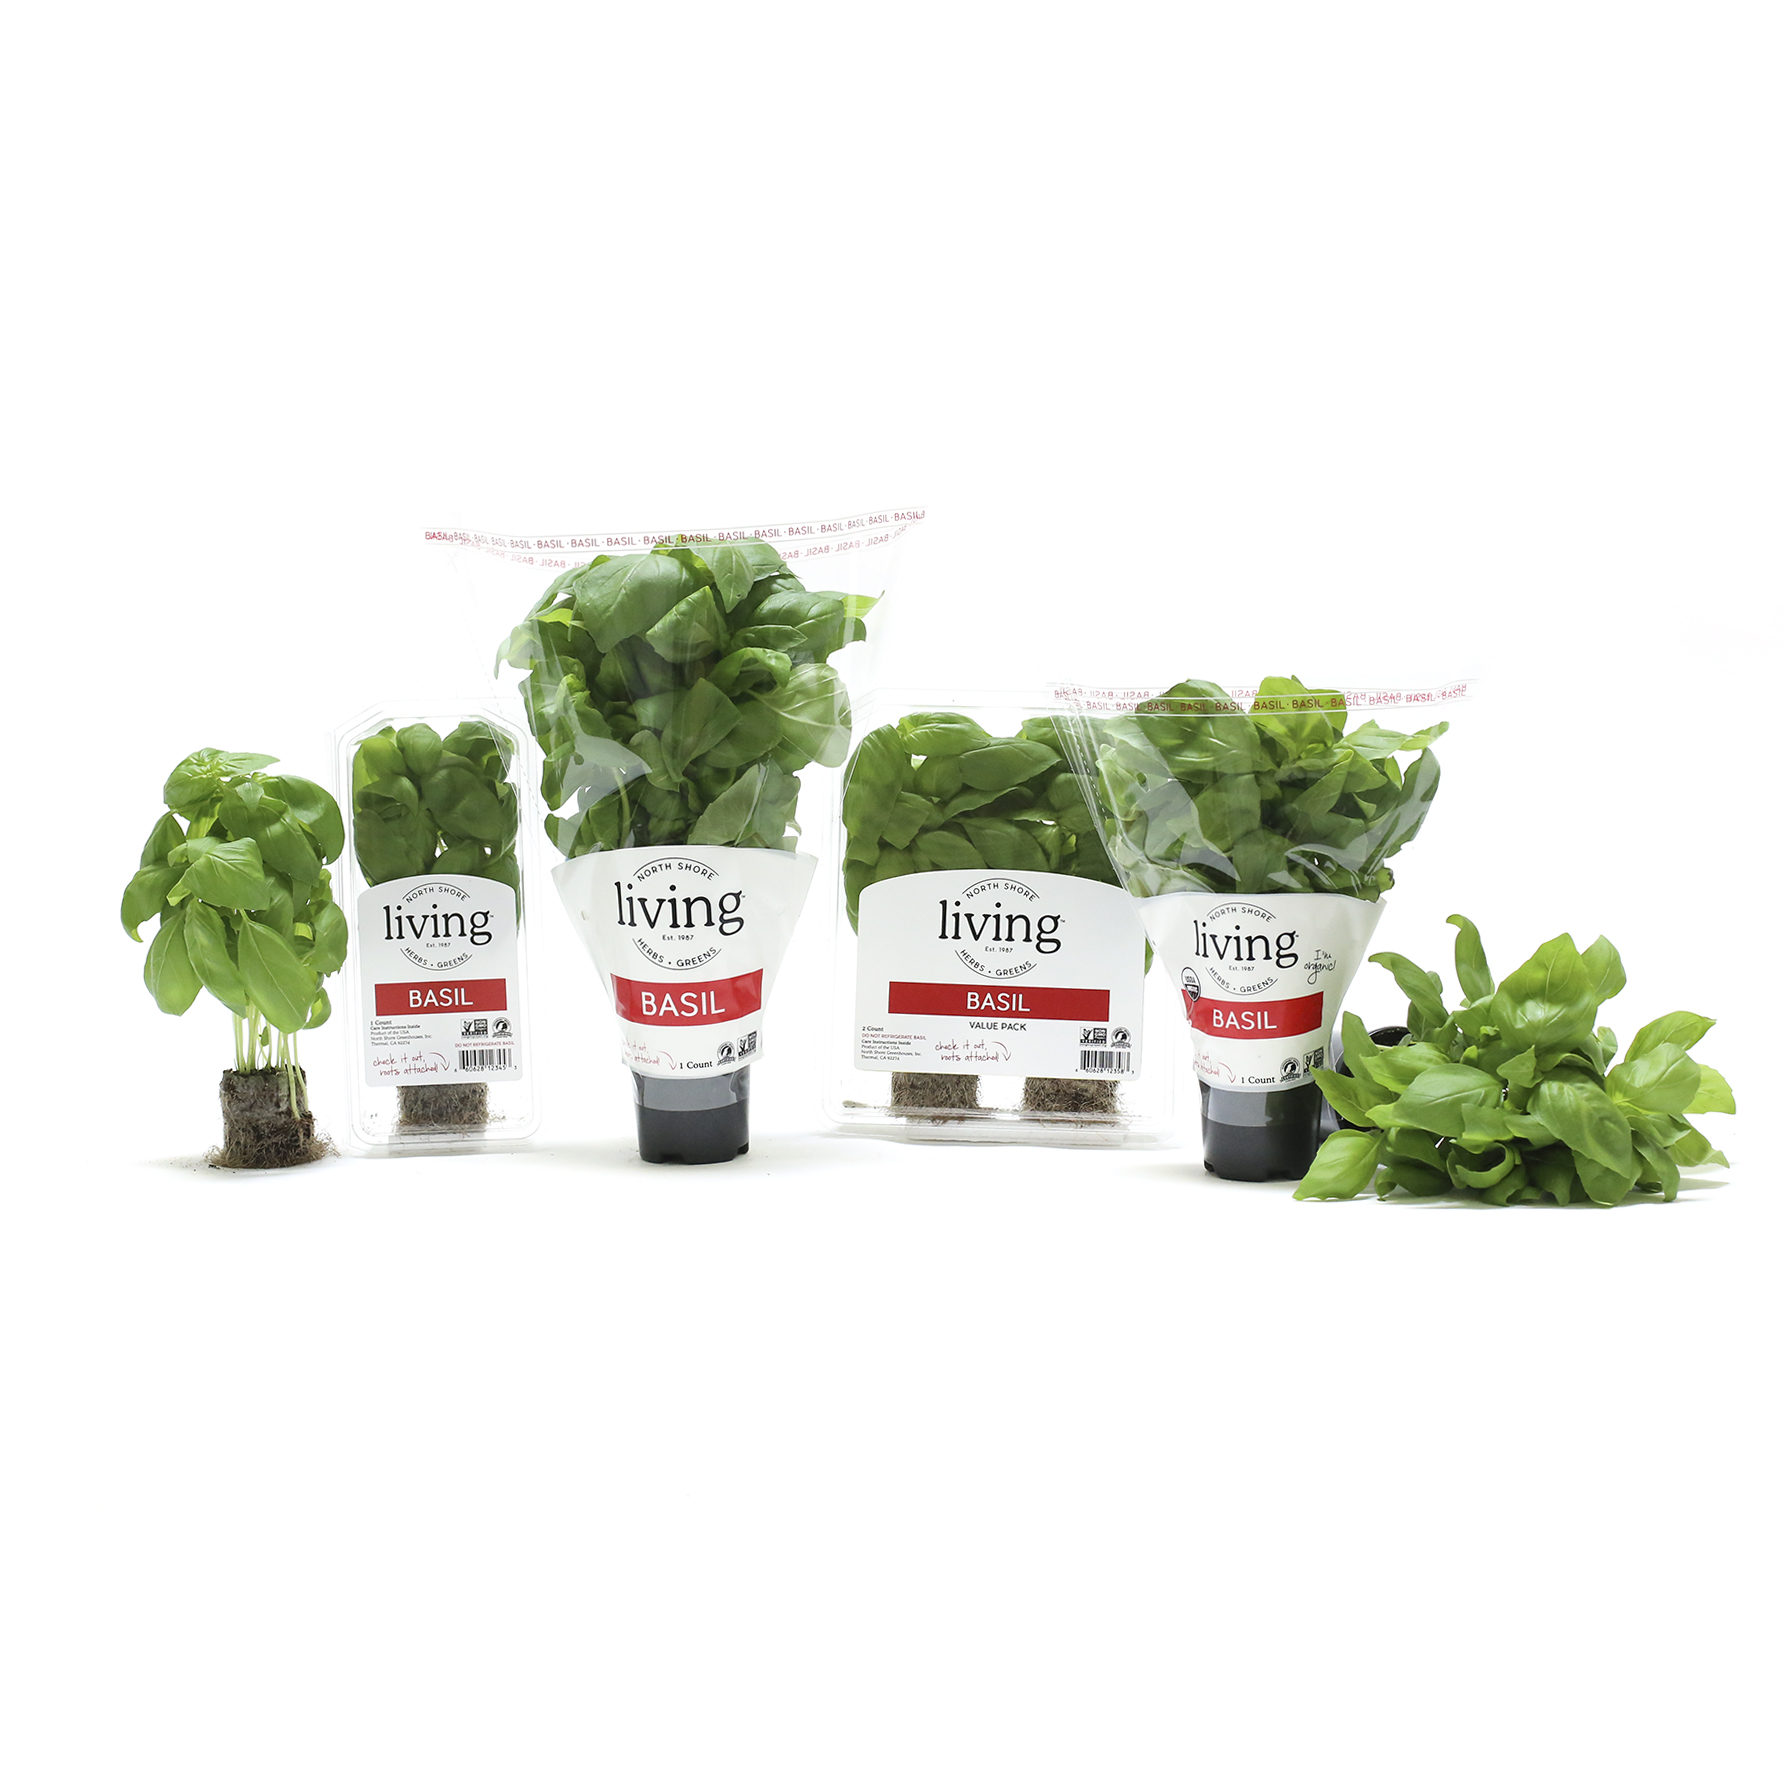 basil fresh herb plant cooking tips north shore living herbs